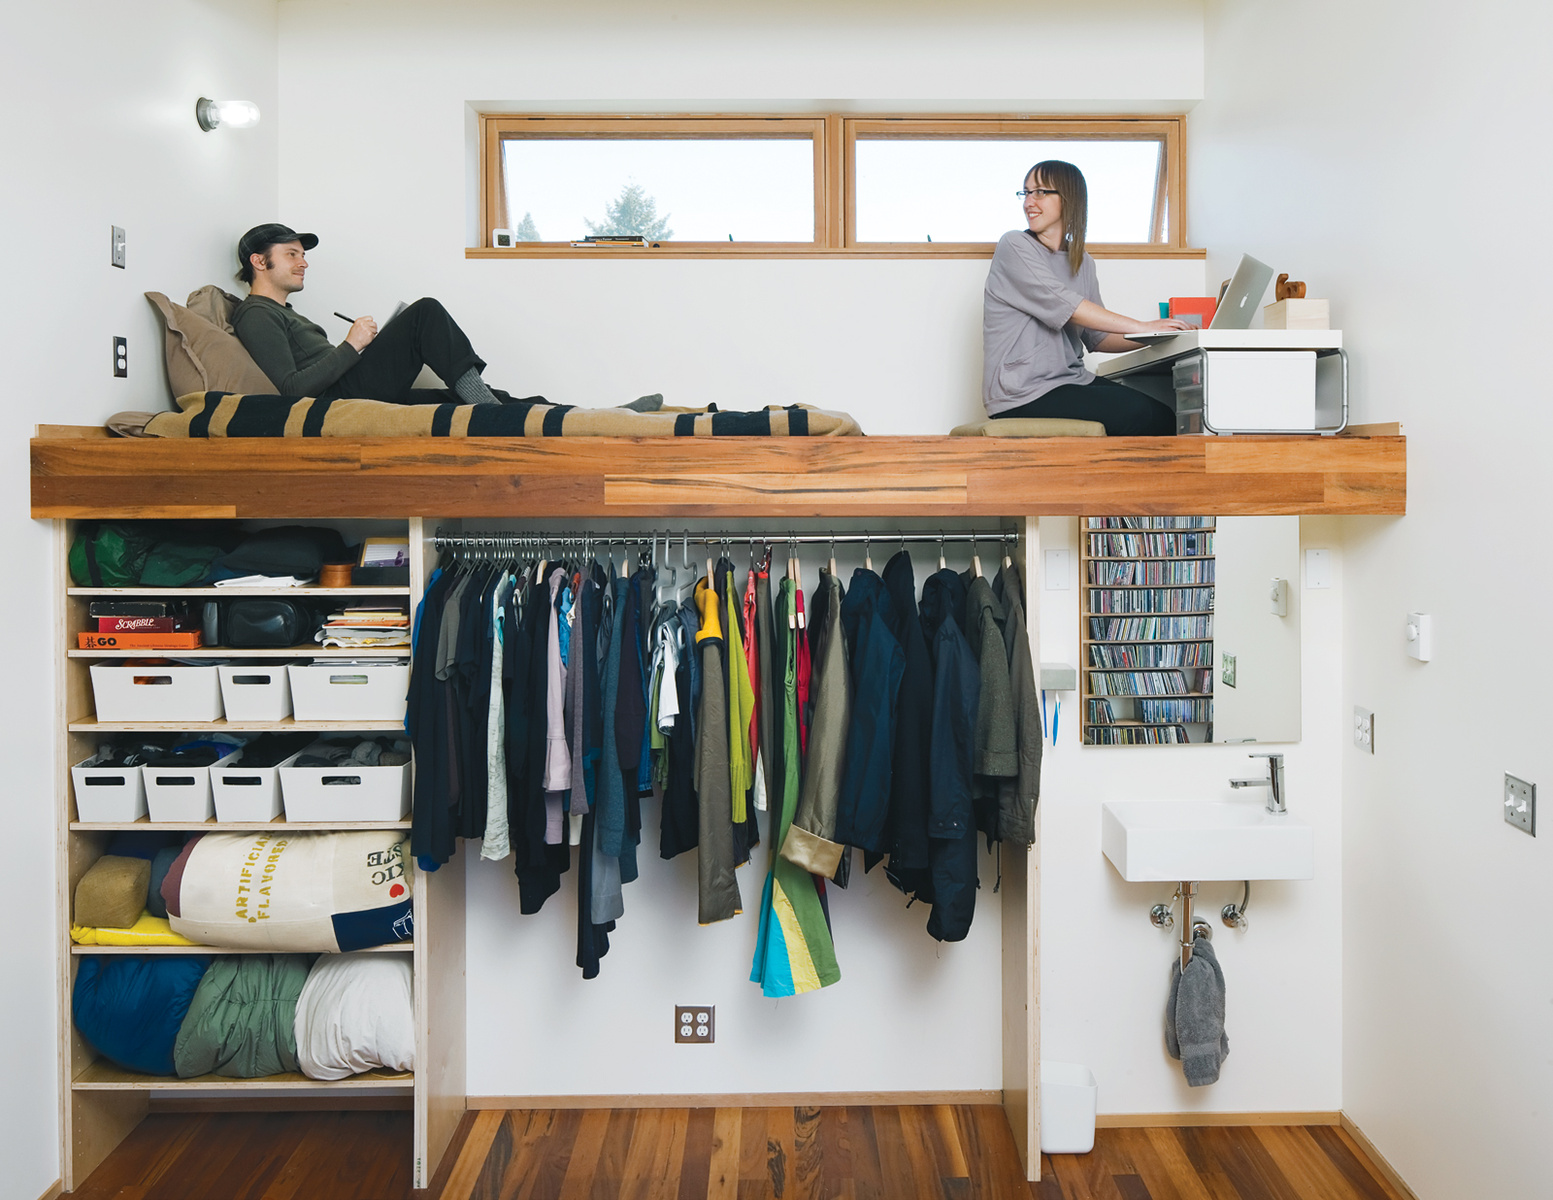 home interior design 7 clever loft spaces for small places - Small Places Design